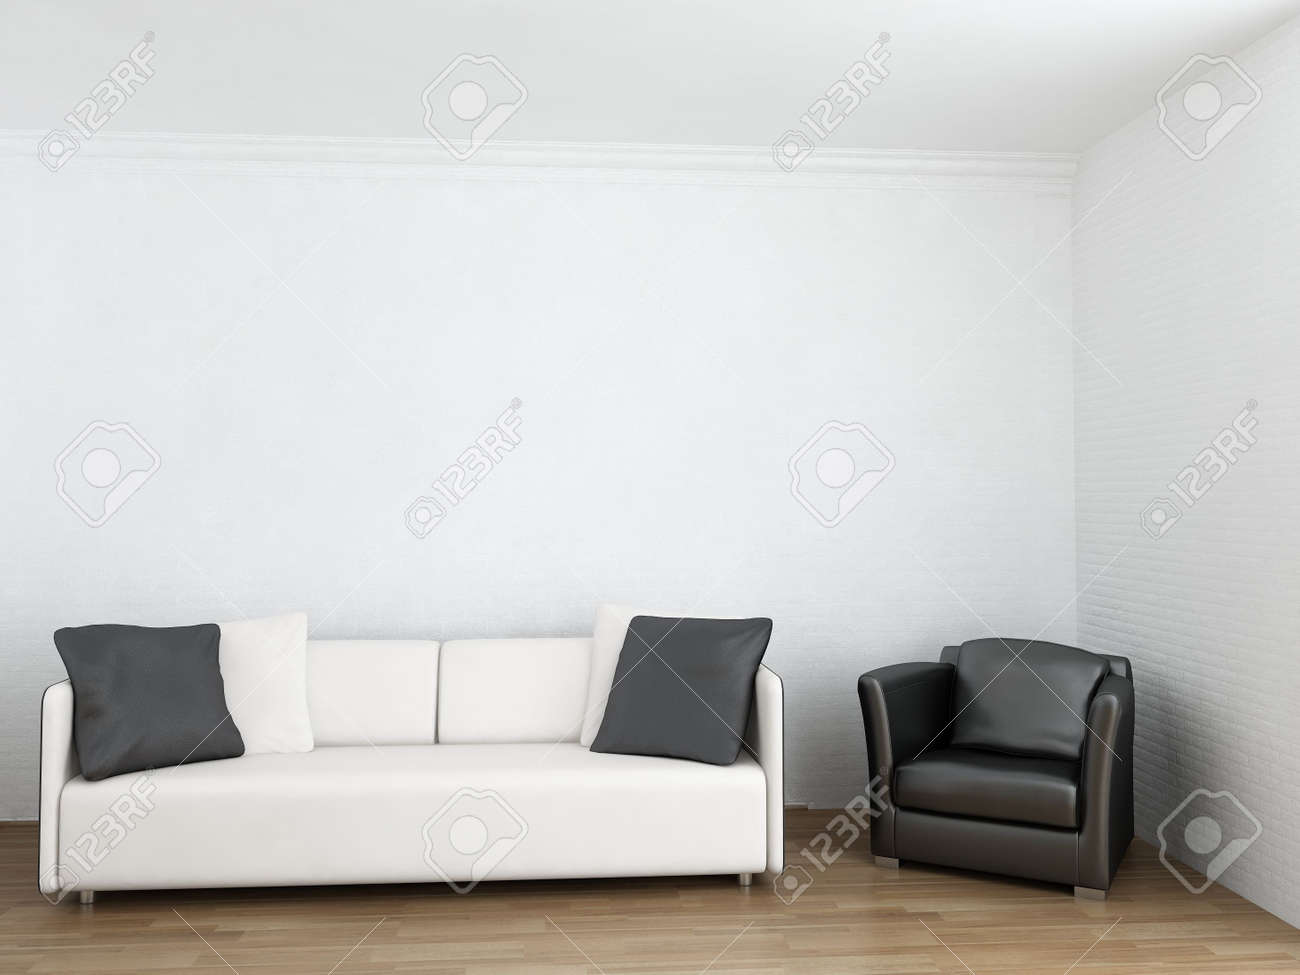 White Couch And Black Armchair To Face A Blank Wall Stock Photo - 5594407